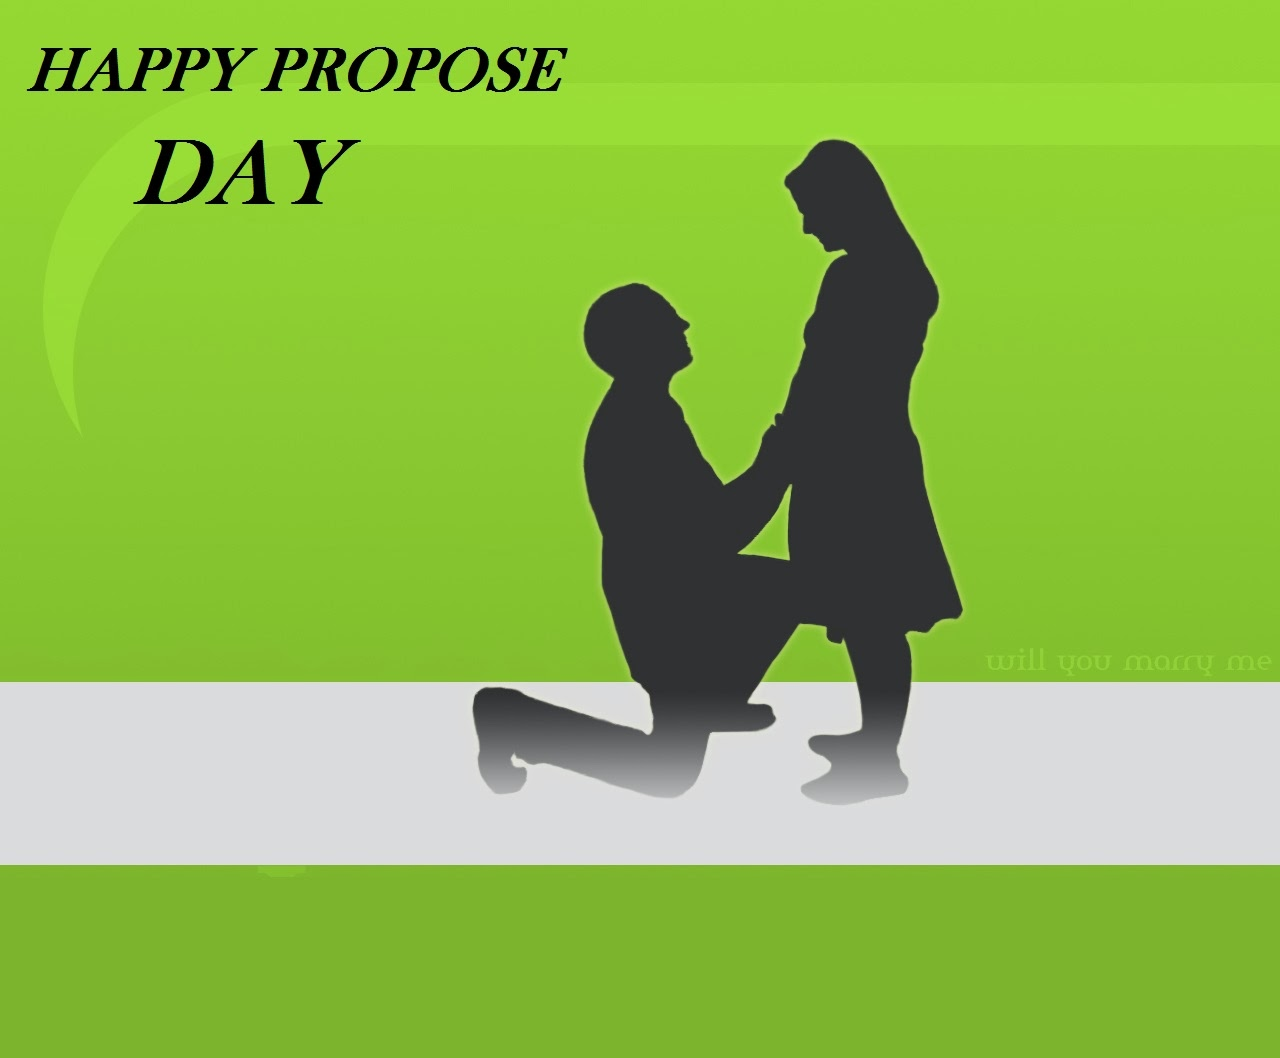 Propose Wallpapers Download 232440   HD Wallpaper Download 1280x1058